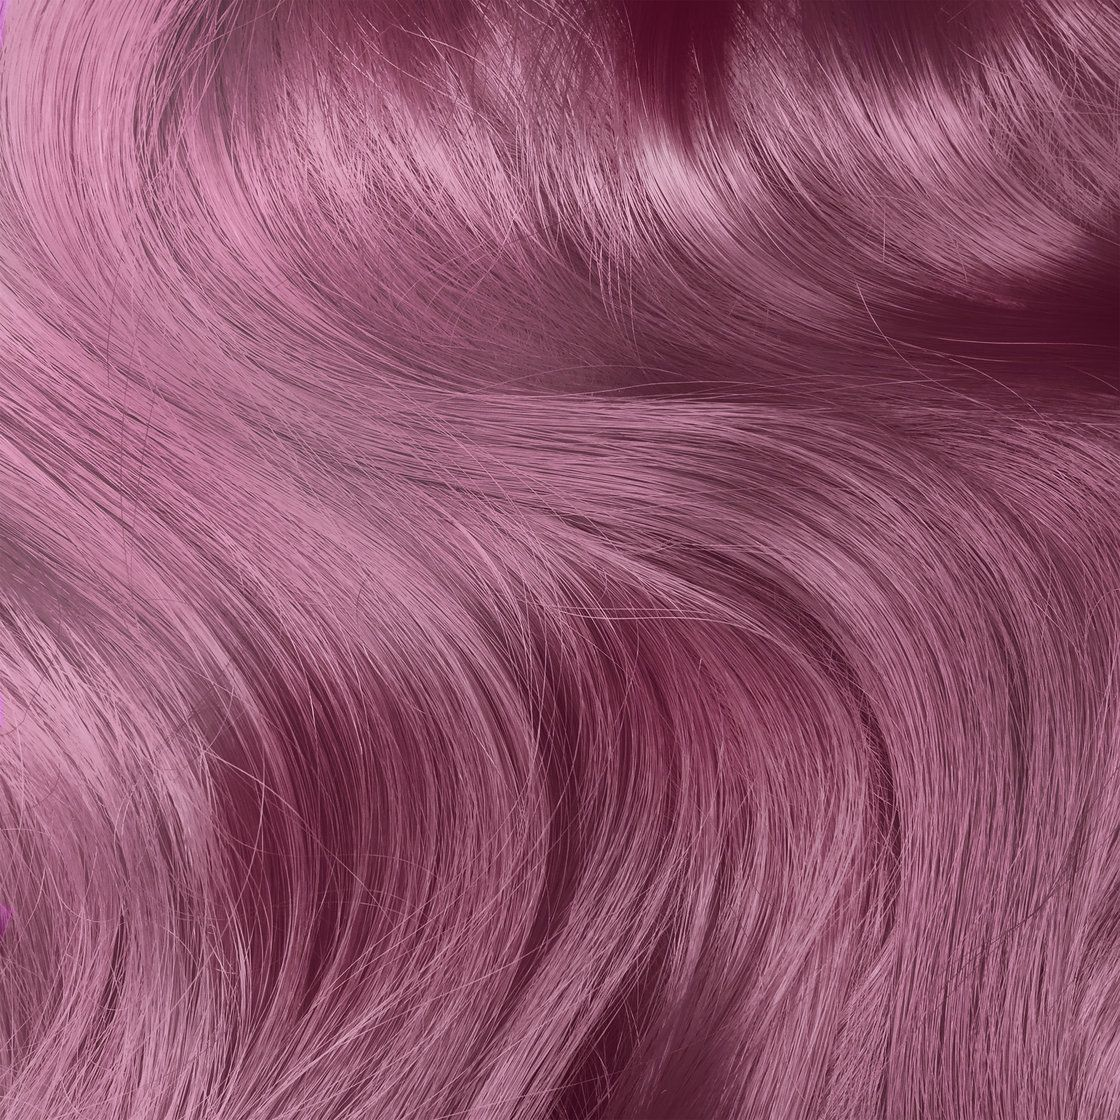 Larger View Of Product Things To Buy Pinterest Hair Dye Dusty